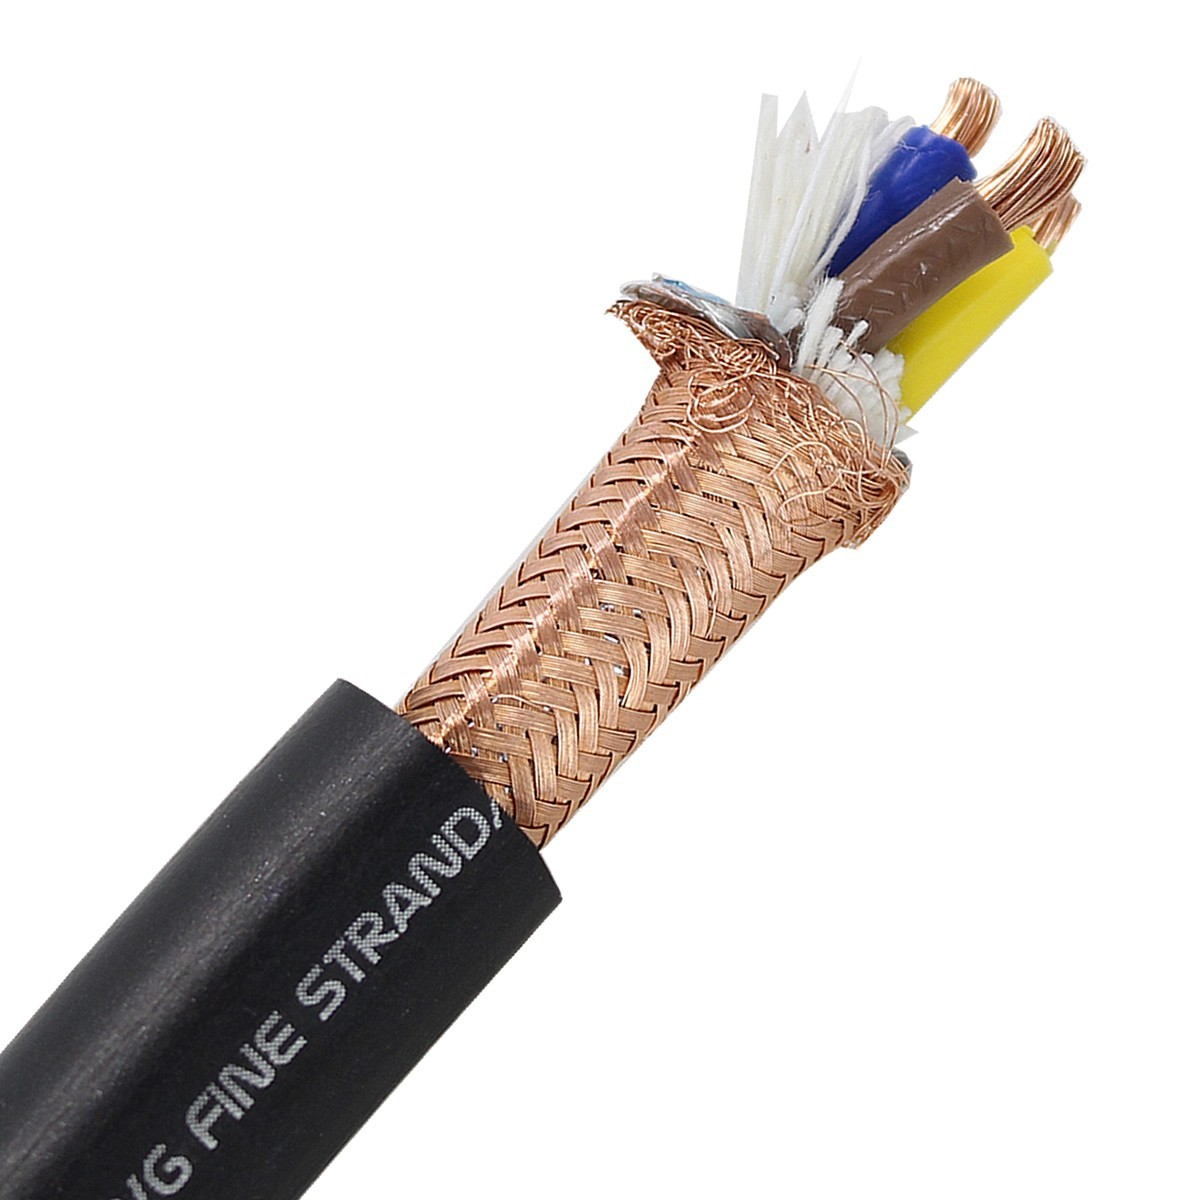 ELECAUDIO CS-331B Power cable Double shilded OFC Copper 3x3.5mm² Ø15mm